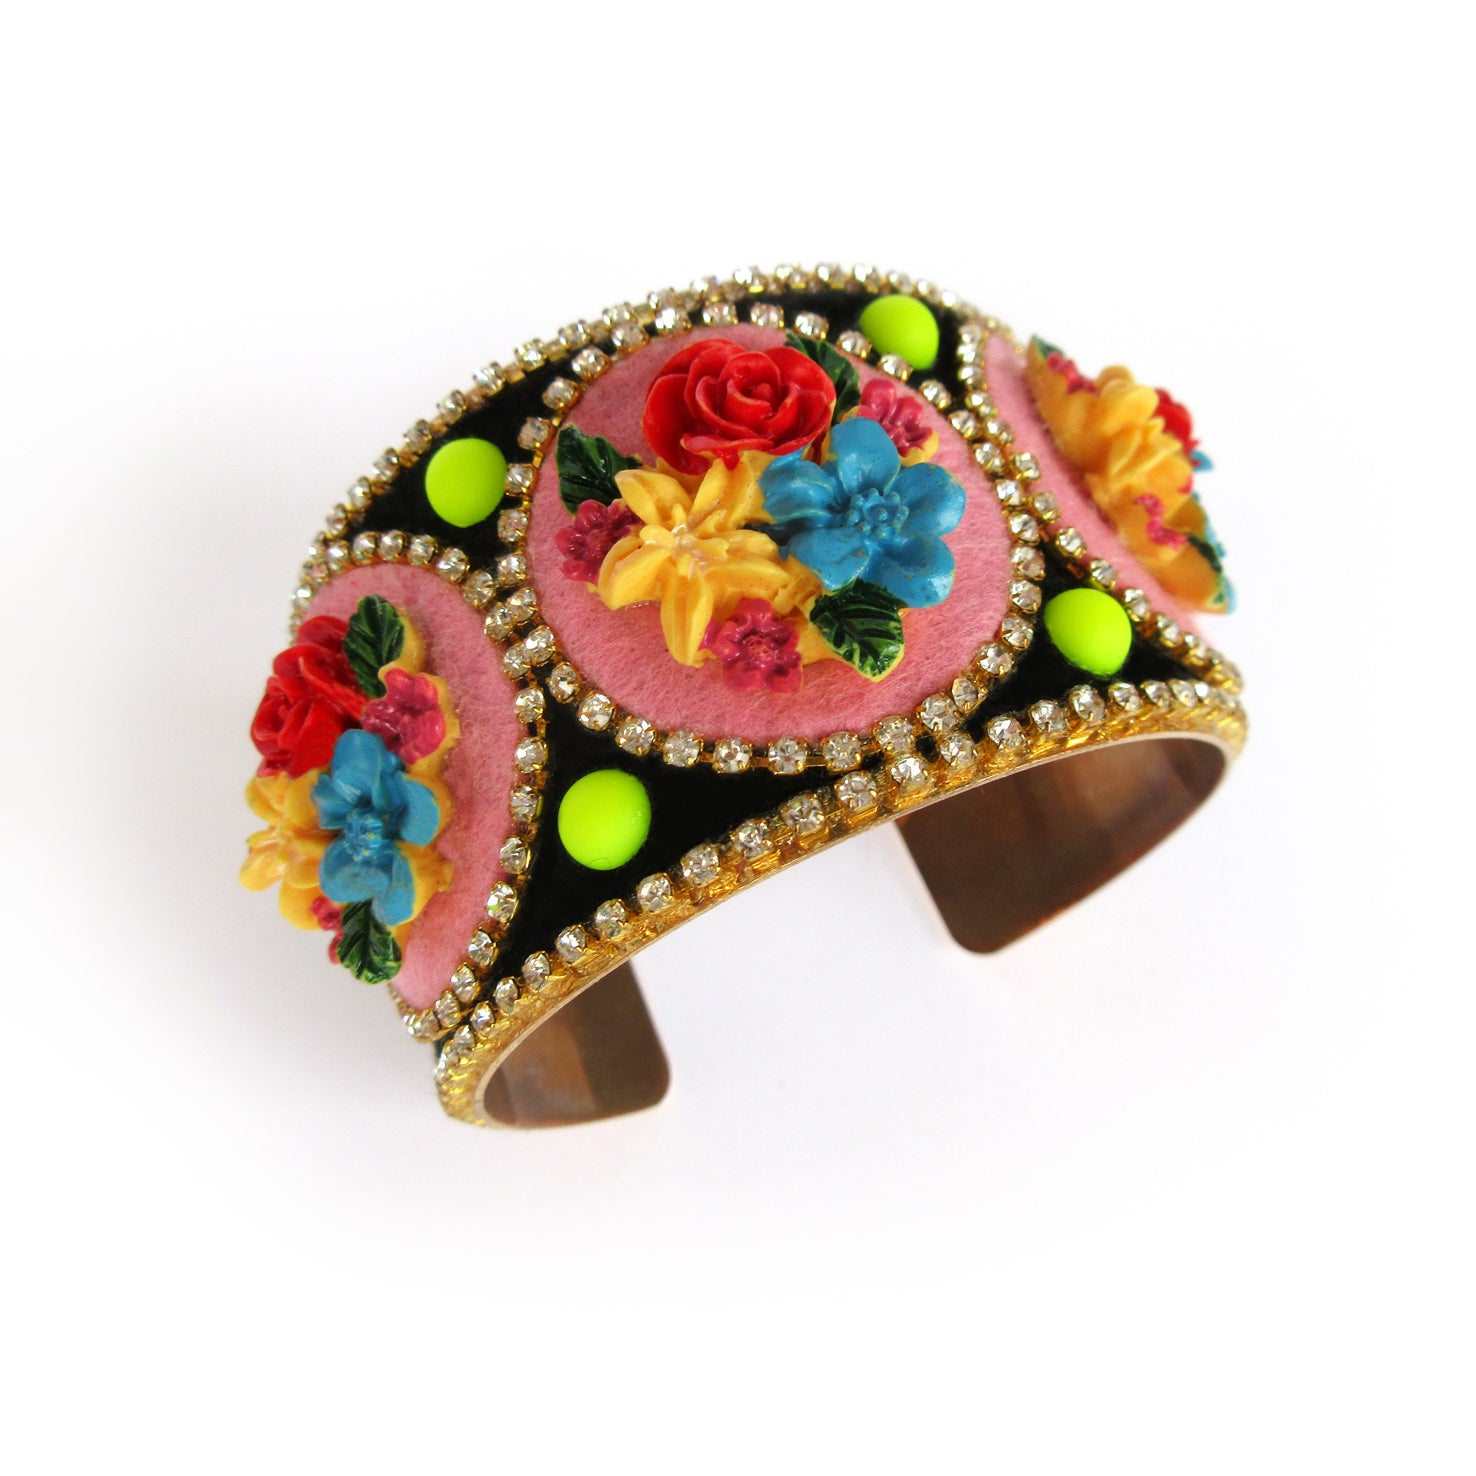 Mouchkine Jewelry handmade in france luxury floral Bracelet bangle